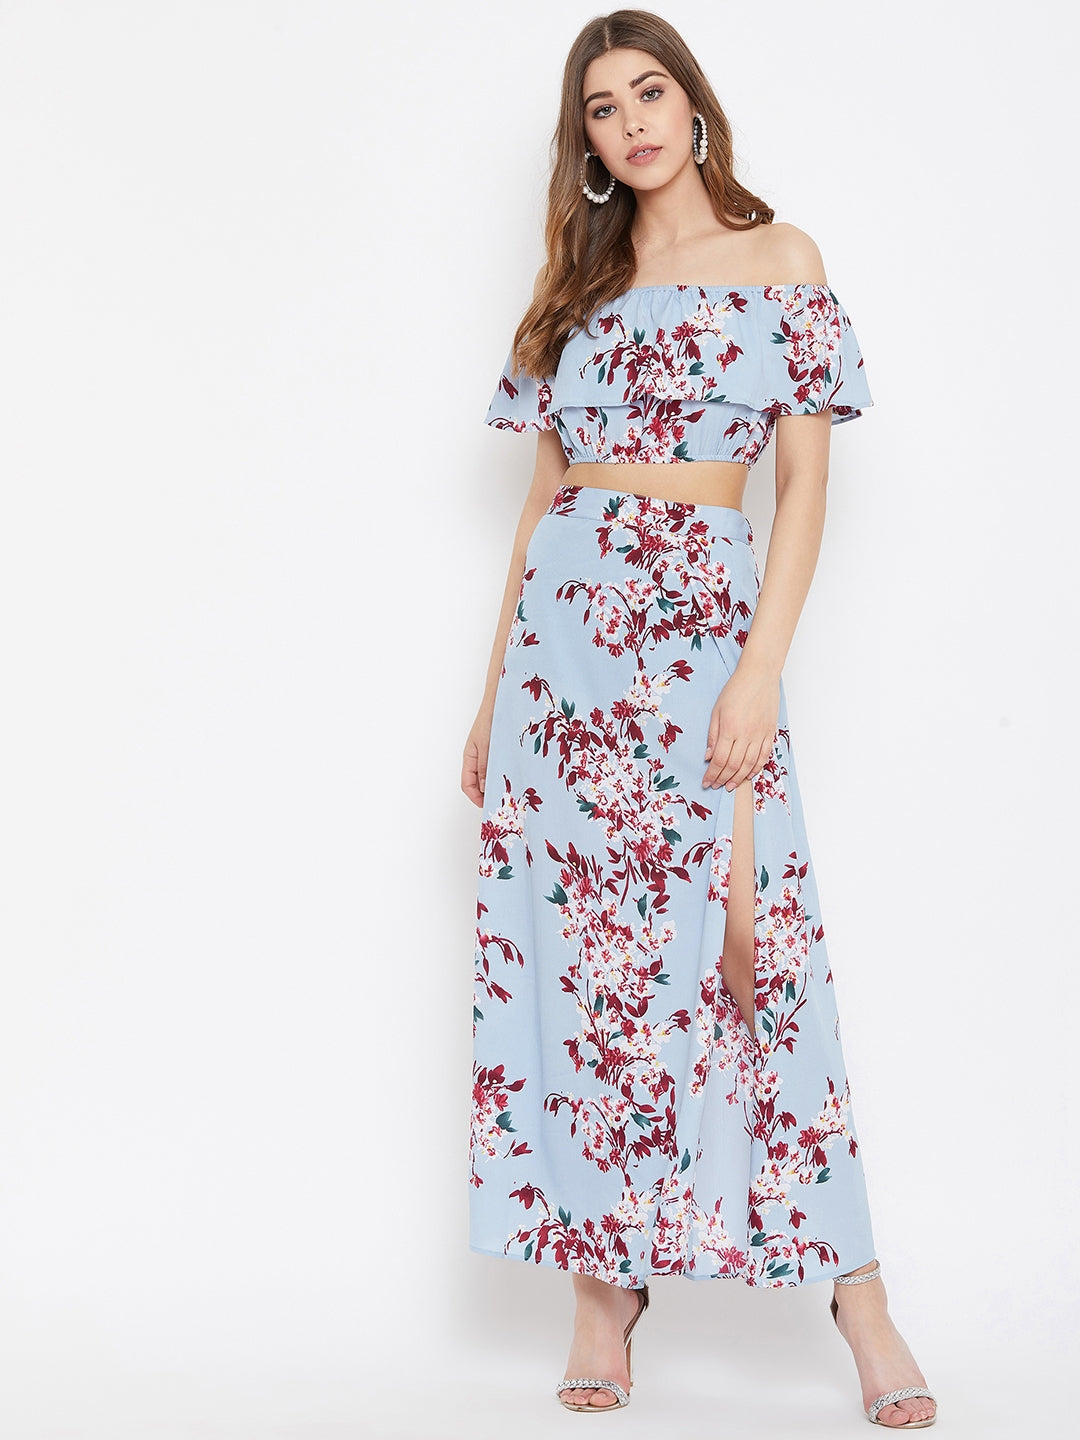 Berrylush Women Blue Floral Print Two Piece Dress